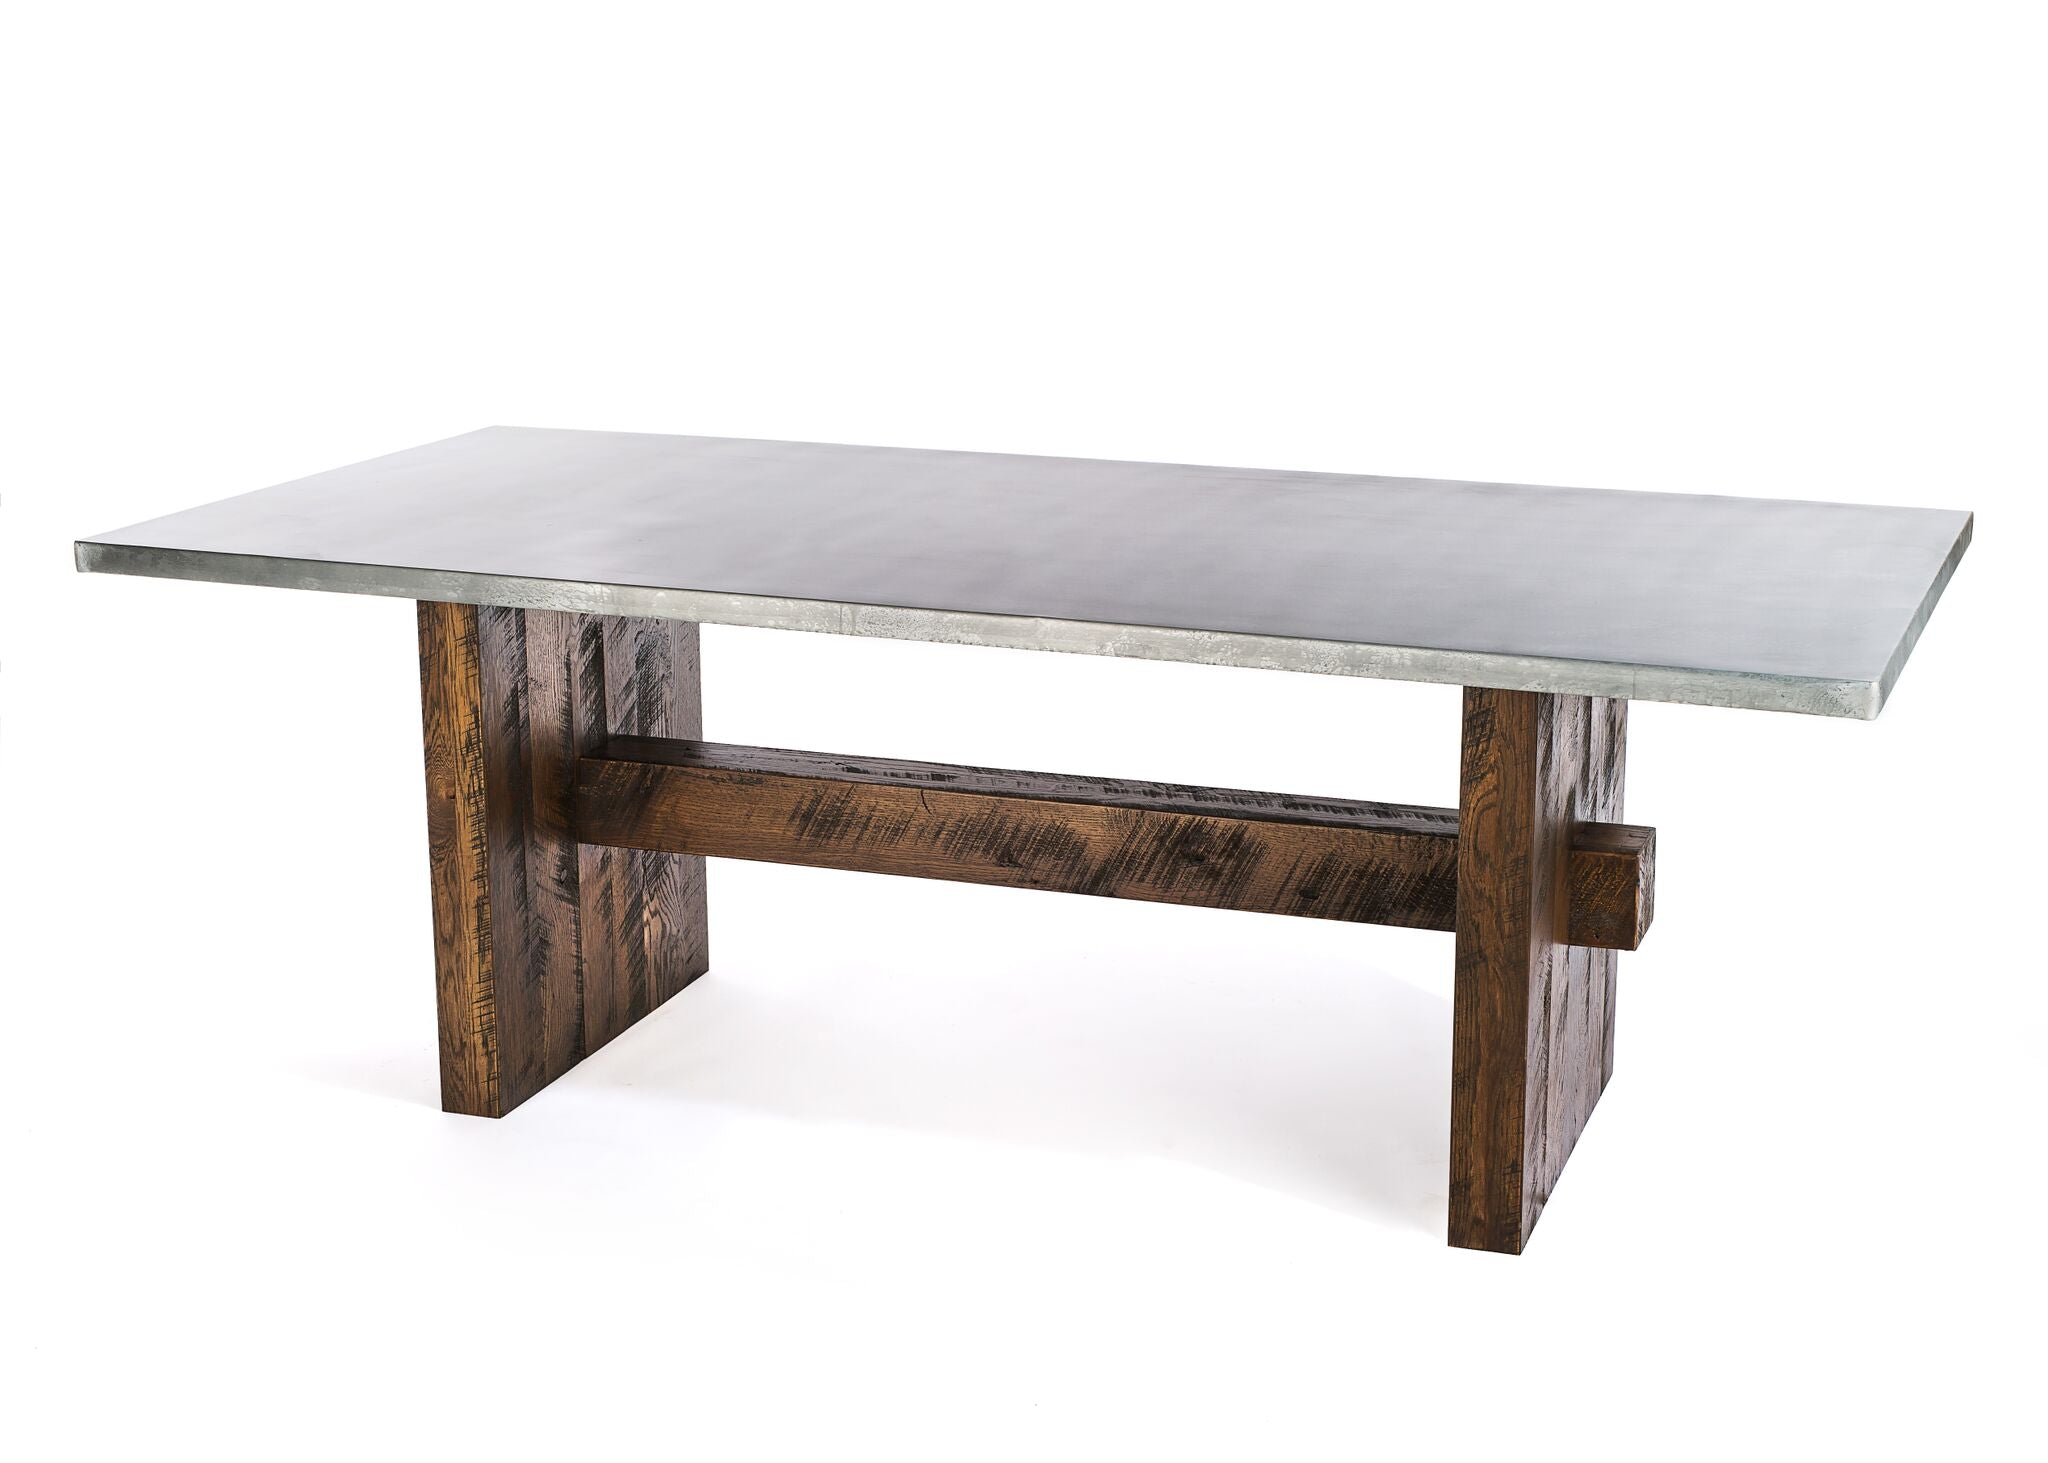 Zinc Rectangular Table | Redford Trestle Table | CLASSIC | Natural Ash | CUSTOM SIZE L 84 W 39 H 30 |